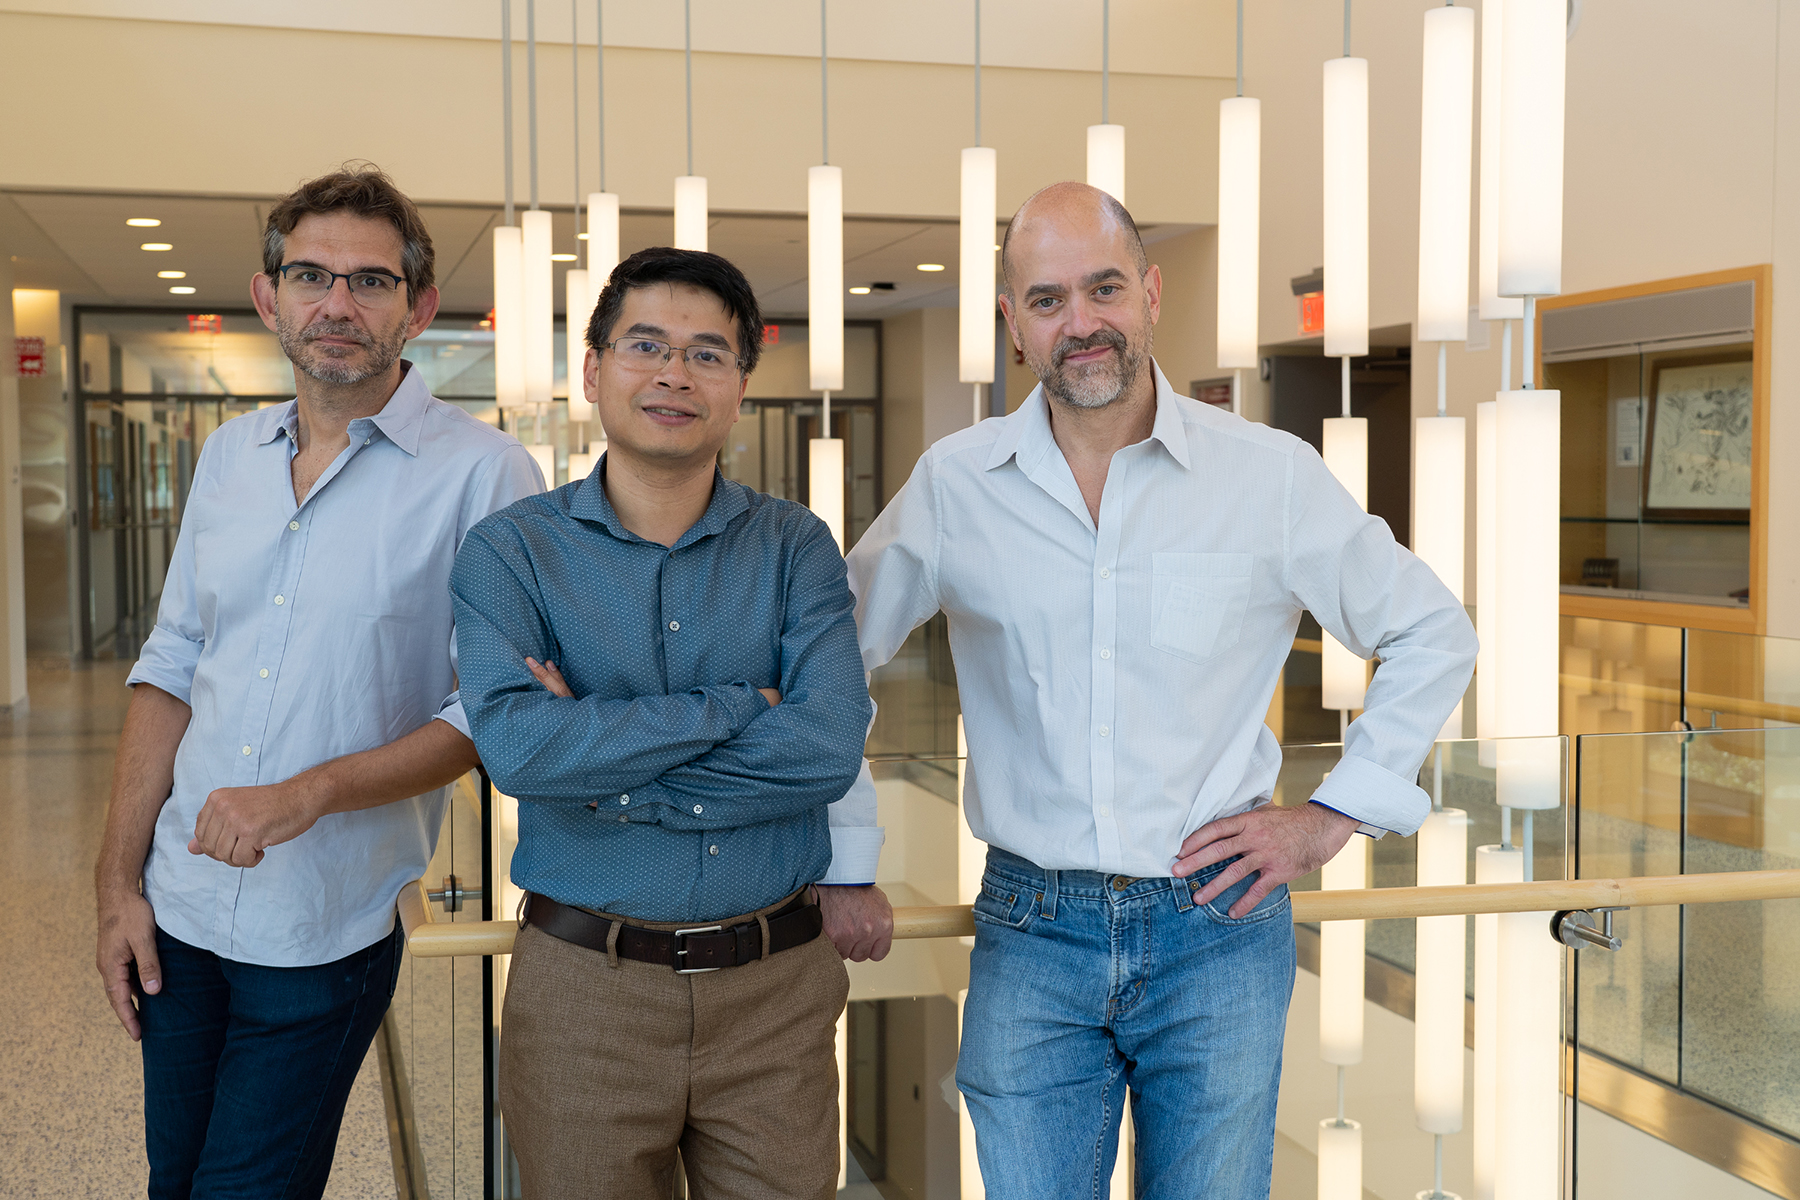 Left to right: Dimitris Samaras, Minh Hoai Nguyen and Gregory Zelinsky